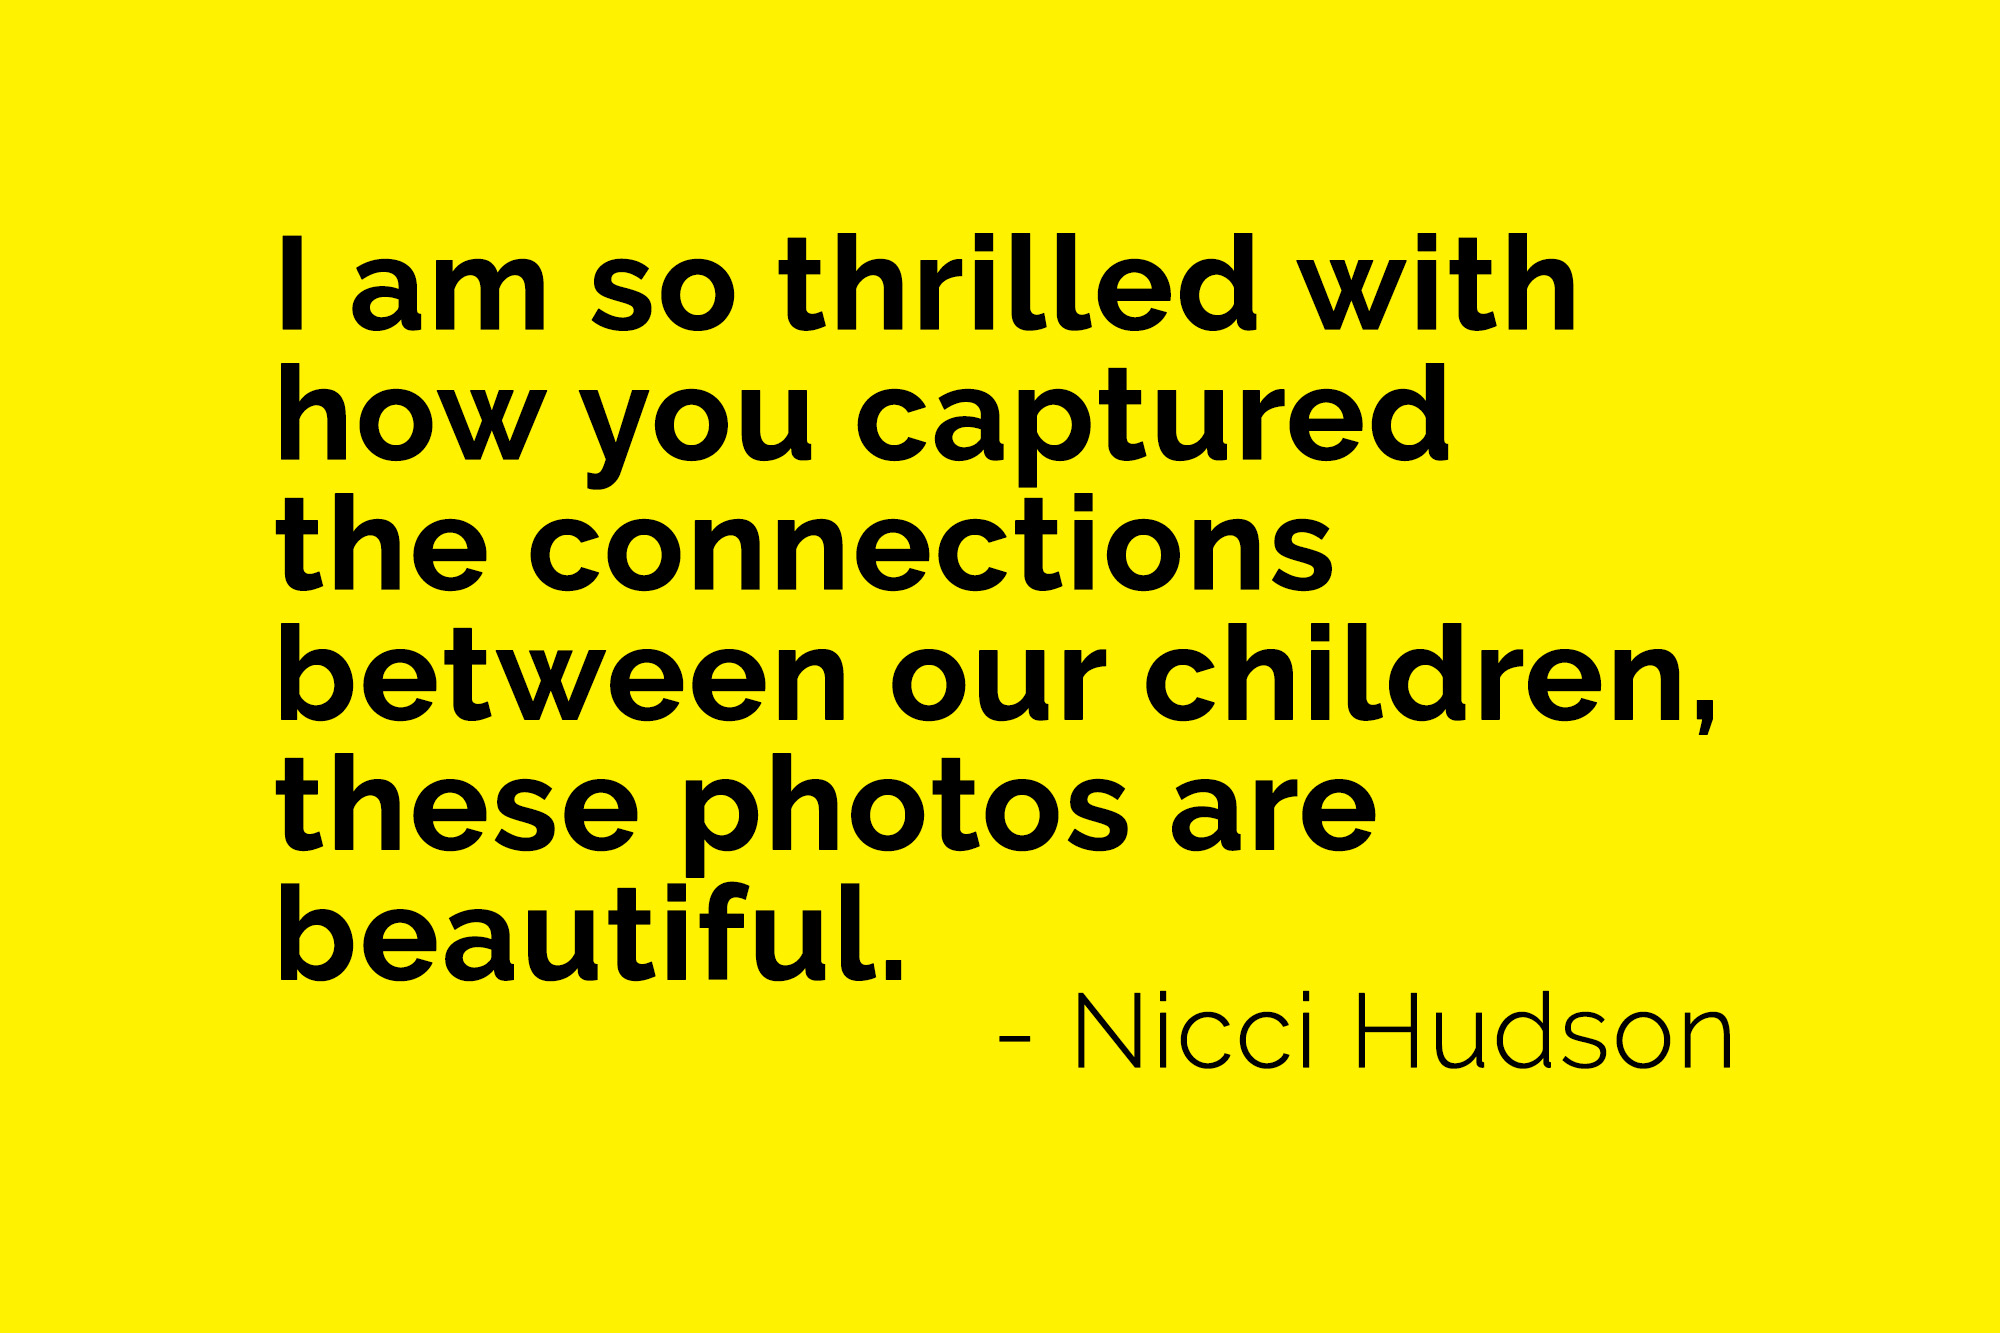 testimonial for family photography